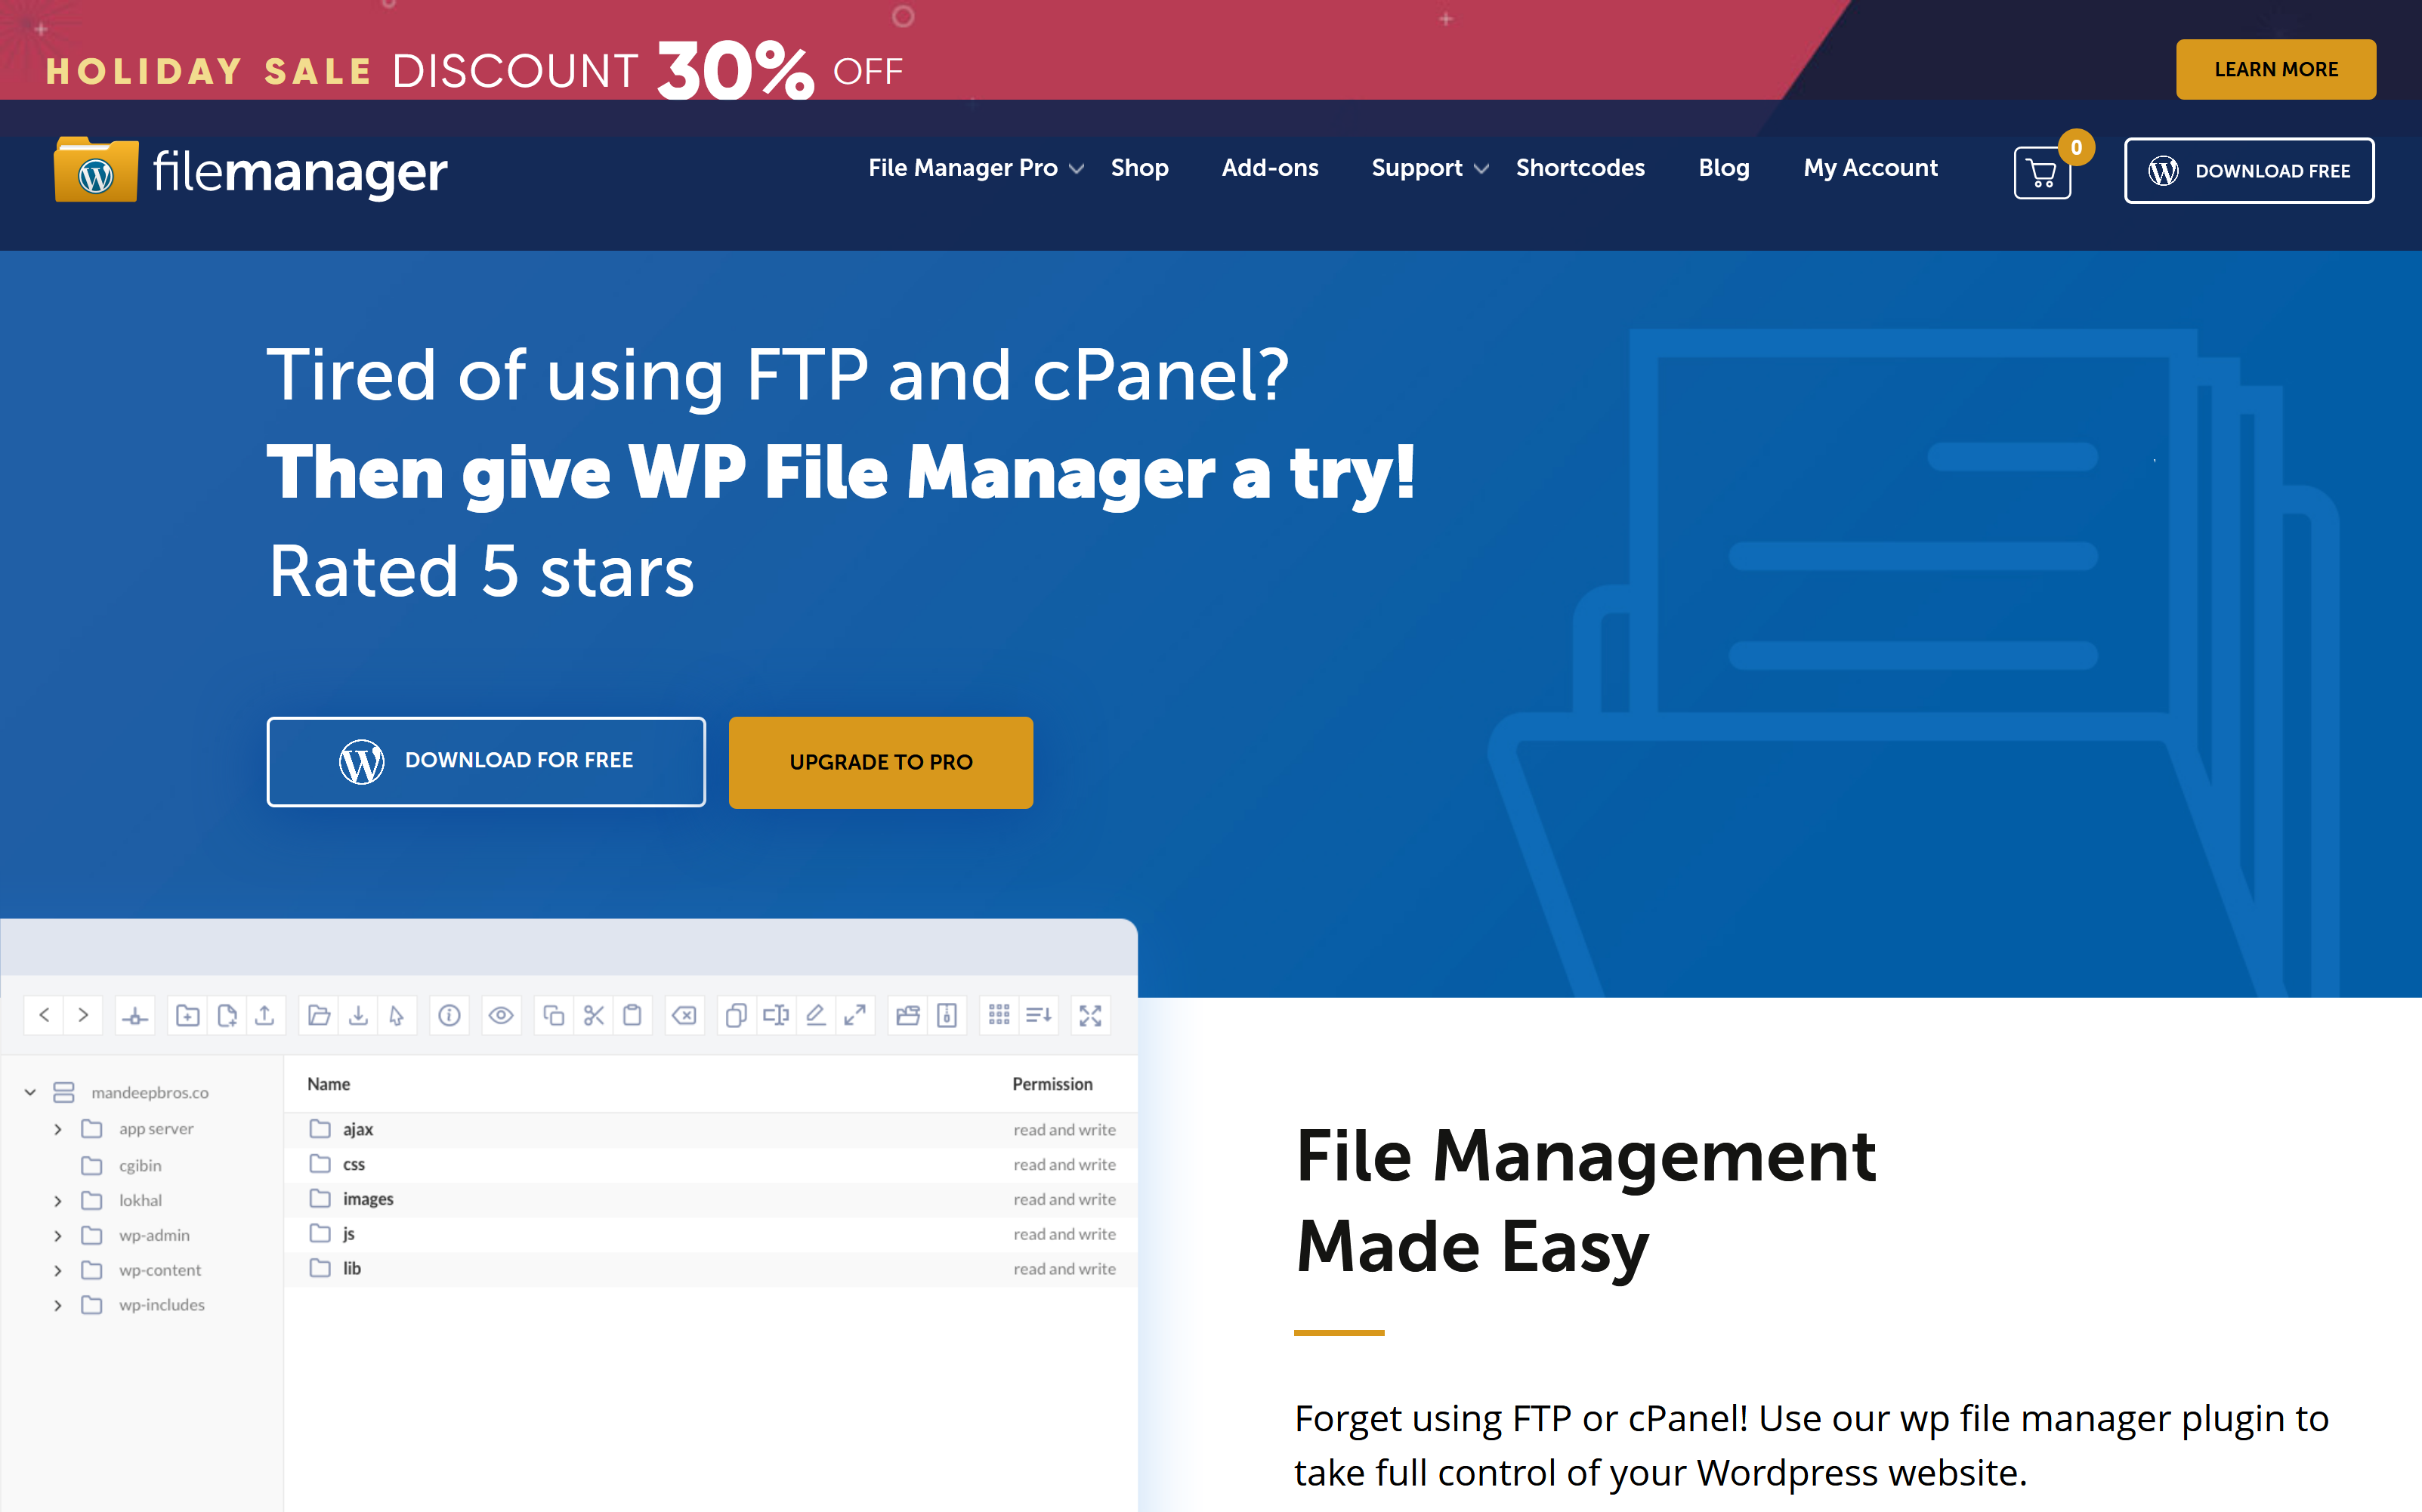 File Manager Plugin For WordPress 7.5.6 – File Management Made Easy